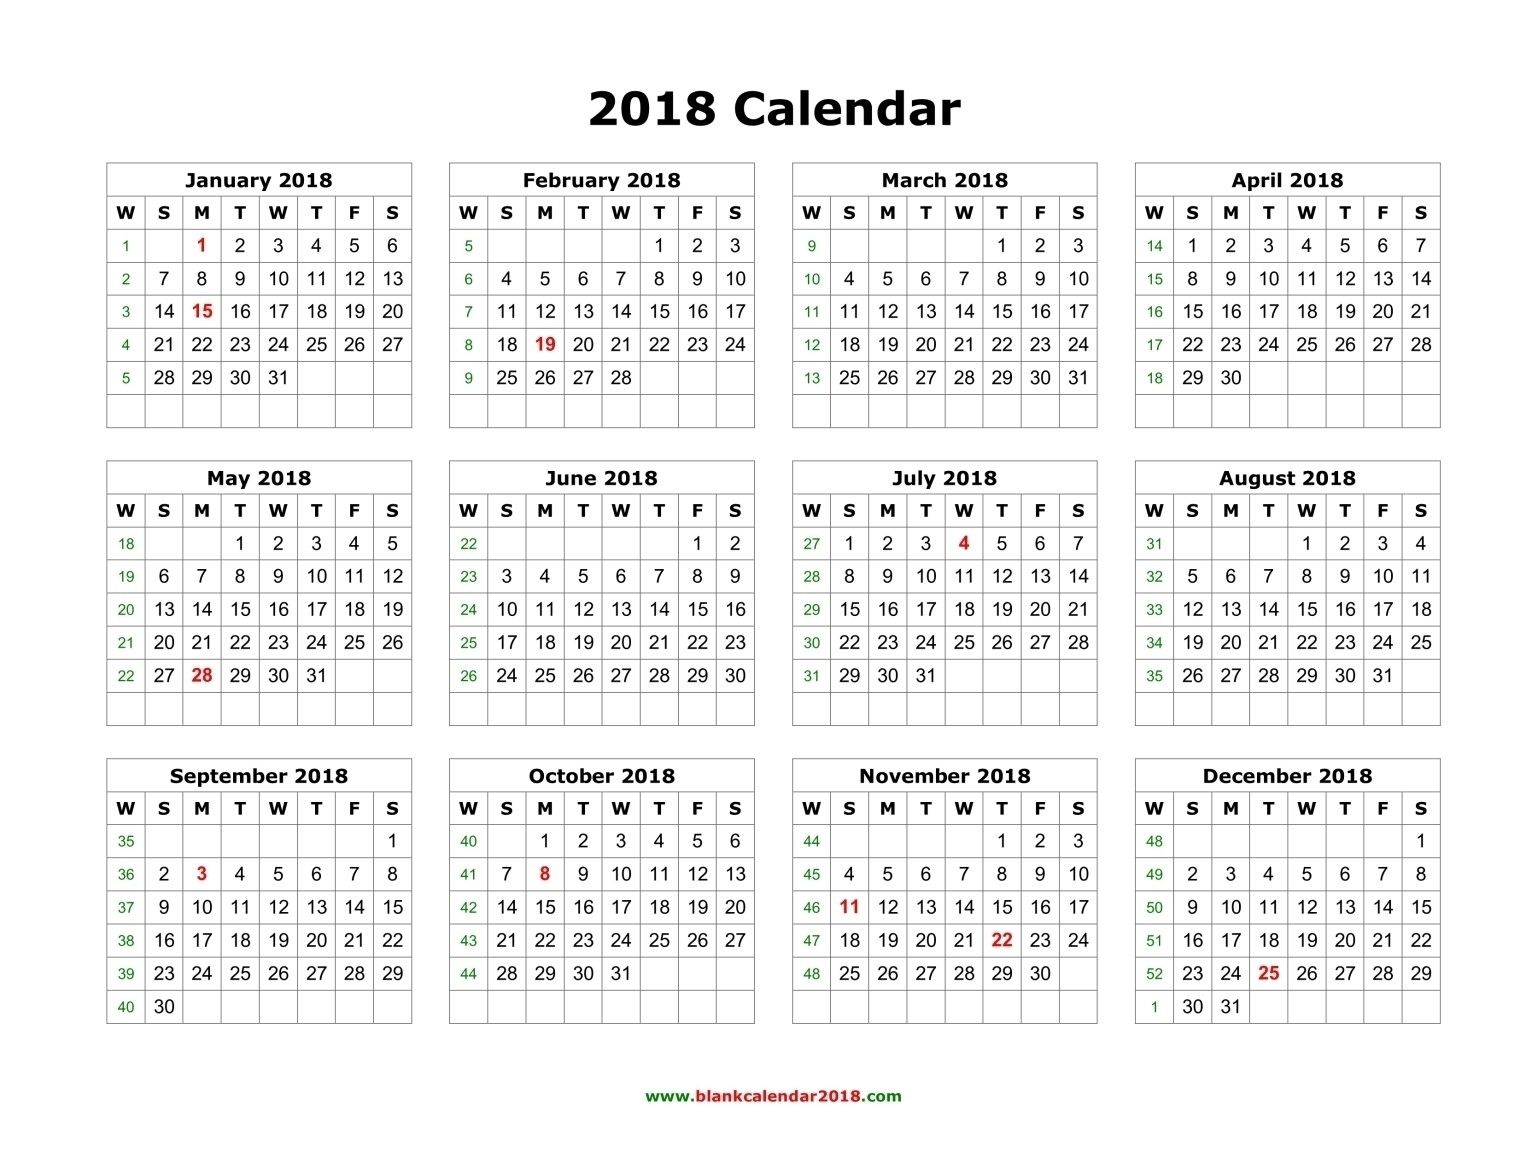 Yearly 2018 Calendar Blank Landscape On 12 Month Calendar 2018 Catch 12 Month Calendar Printable Yearly Calendar Template Monthly Calendar Template